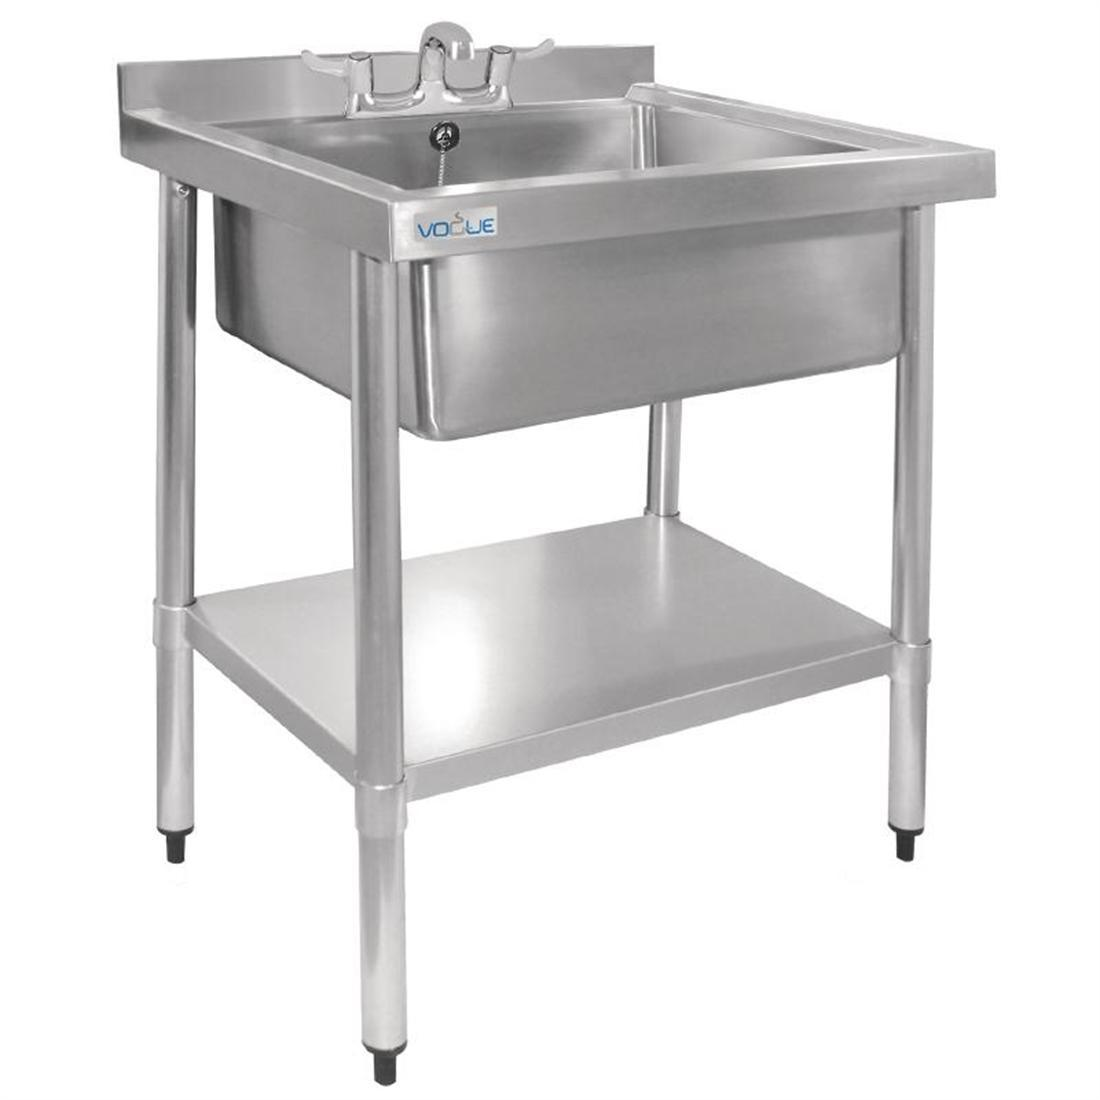 Vogue Stainless Steel Midi Pot Wash Sink with Undershelf - Each - GJ537